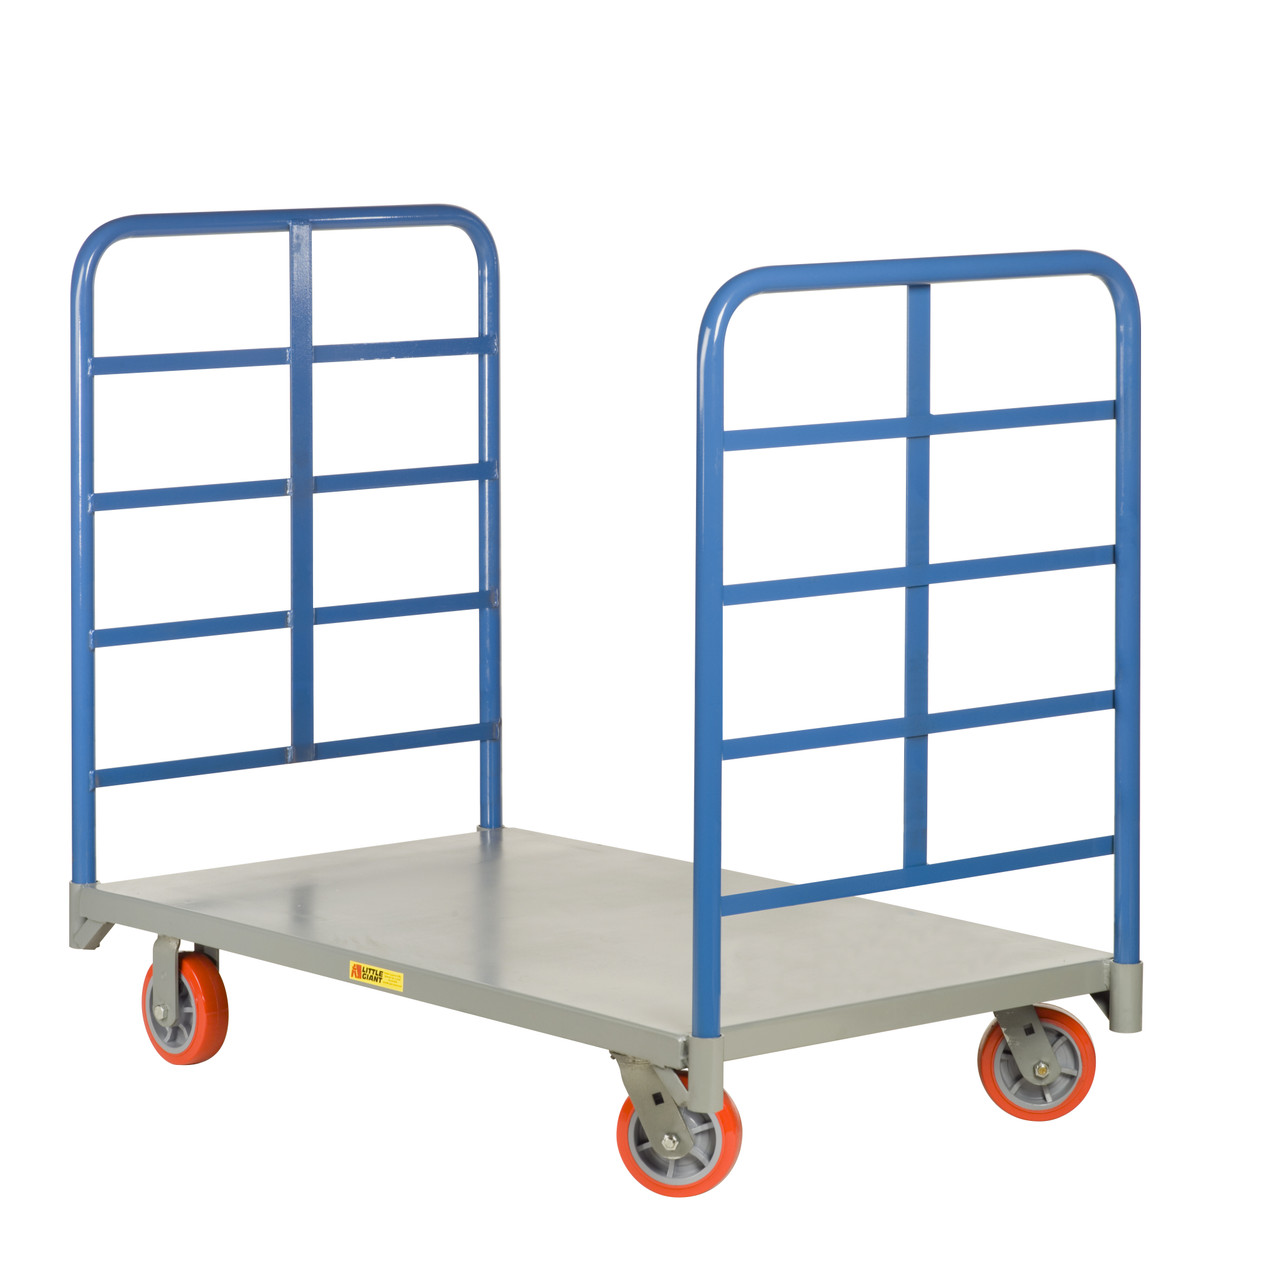 Double End Rack Platform Trucks